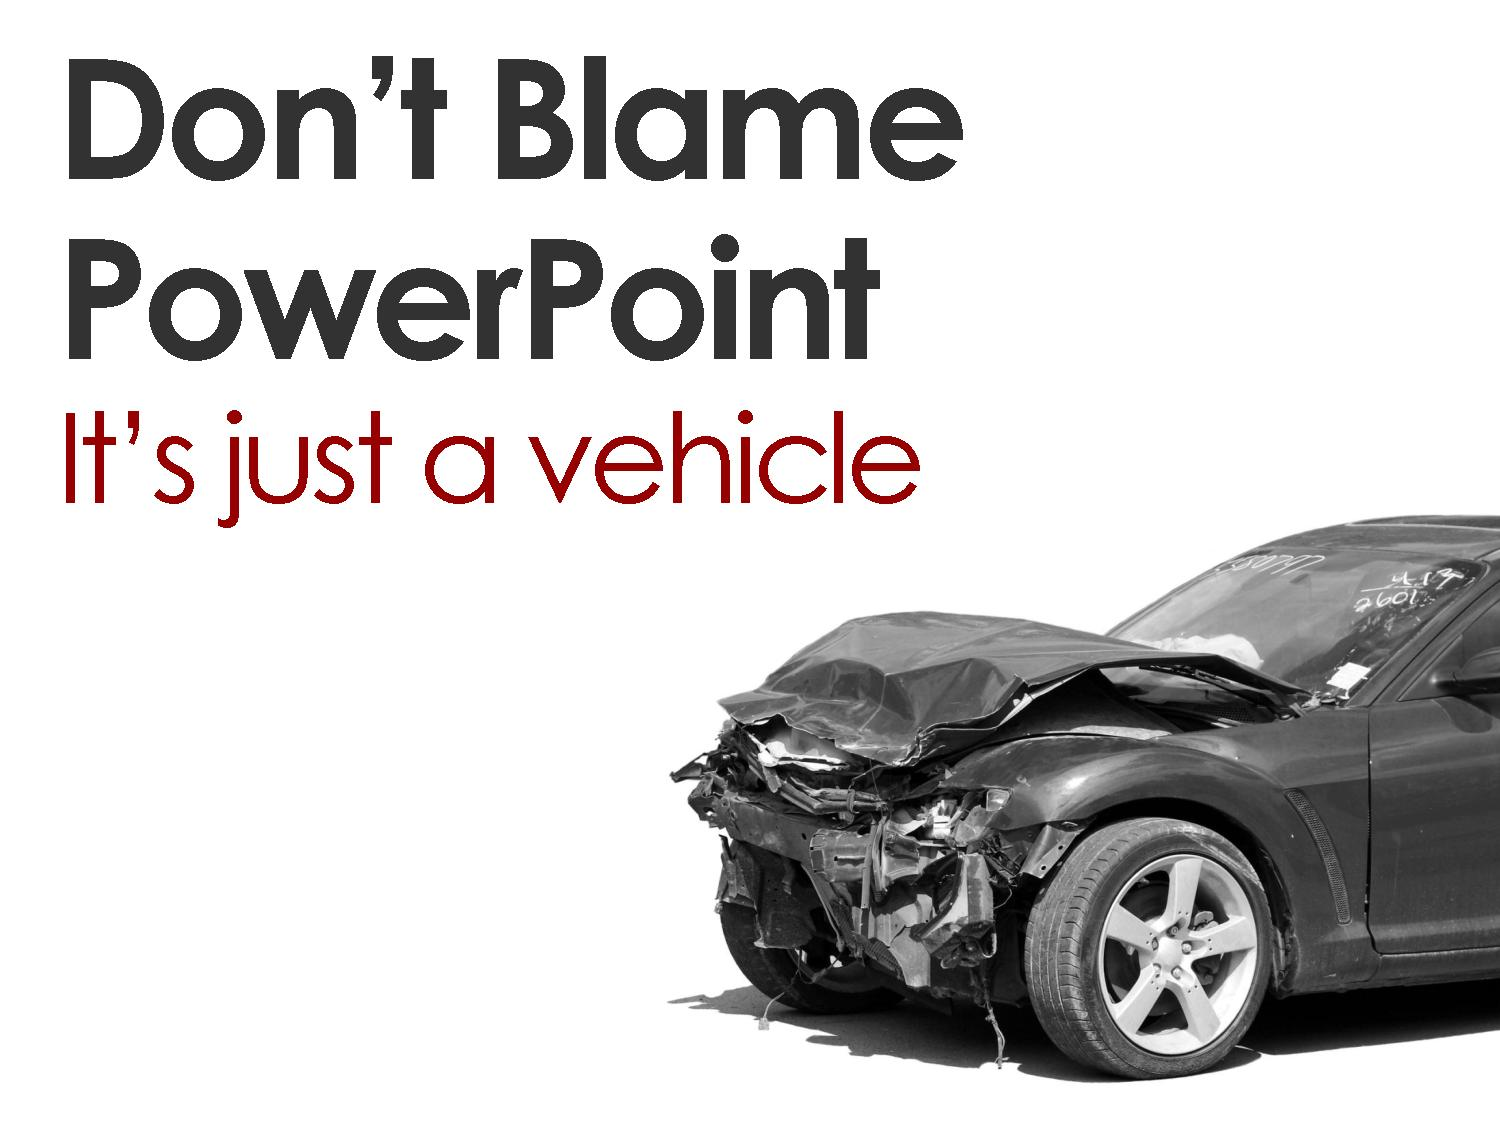 Don't blame PowerPoint, it's just a vehicle